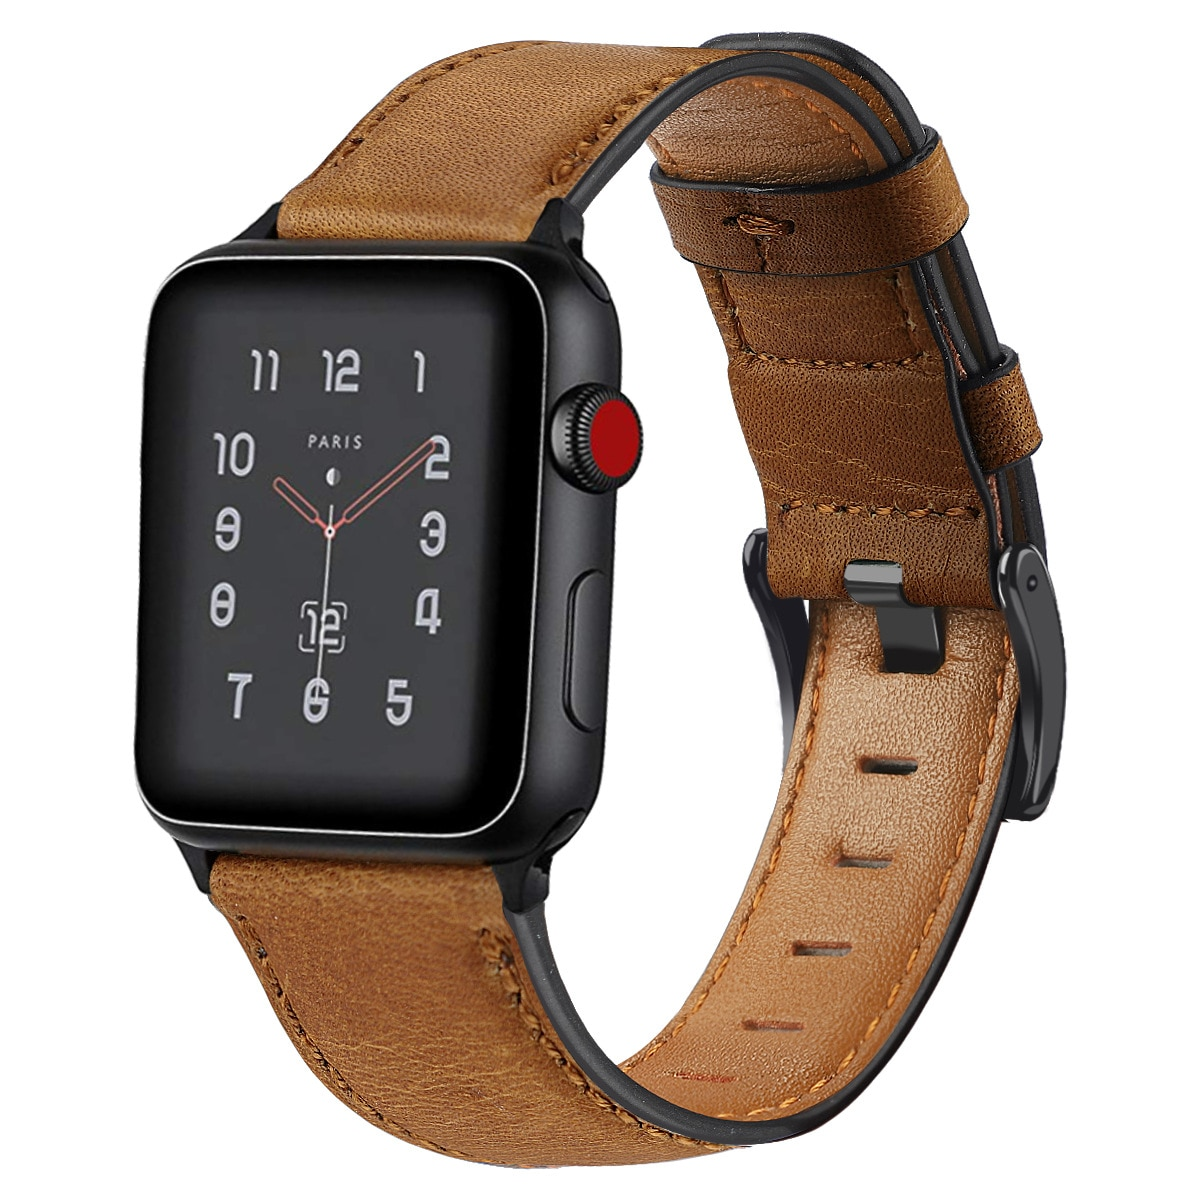 urvoi leather loop for apple watch series 3 2 1 band for iwatch comfortable feel soft leather strap with magnet buckle Genuine Leather with Metal Buckle Strap for Apple Watch Series 6 SE 5 4 3 2 1 Corium Wrist Band for Iwatch 38mm 40mm 42mm 44mm